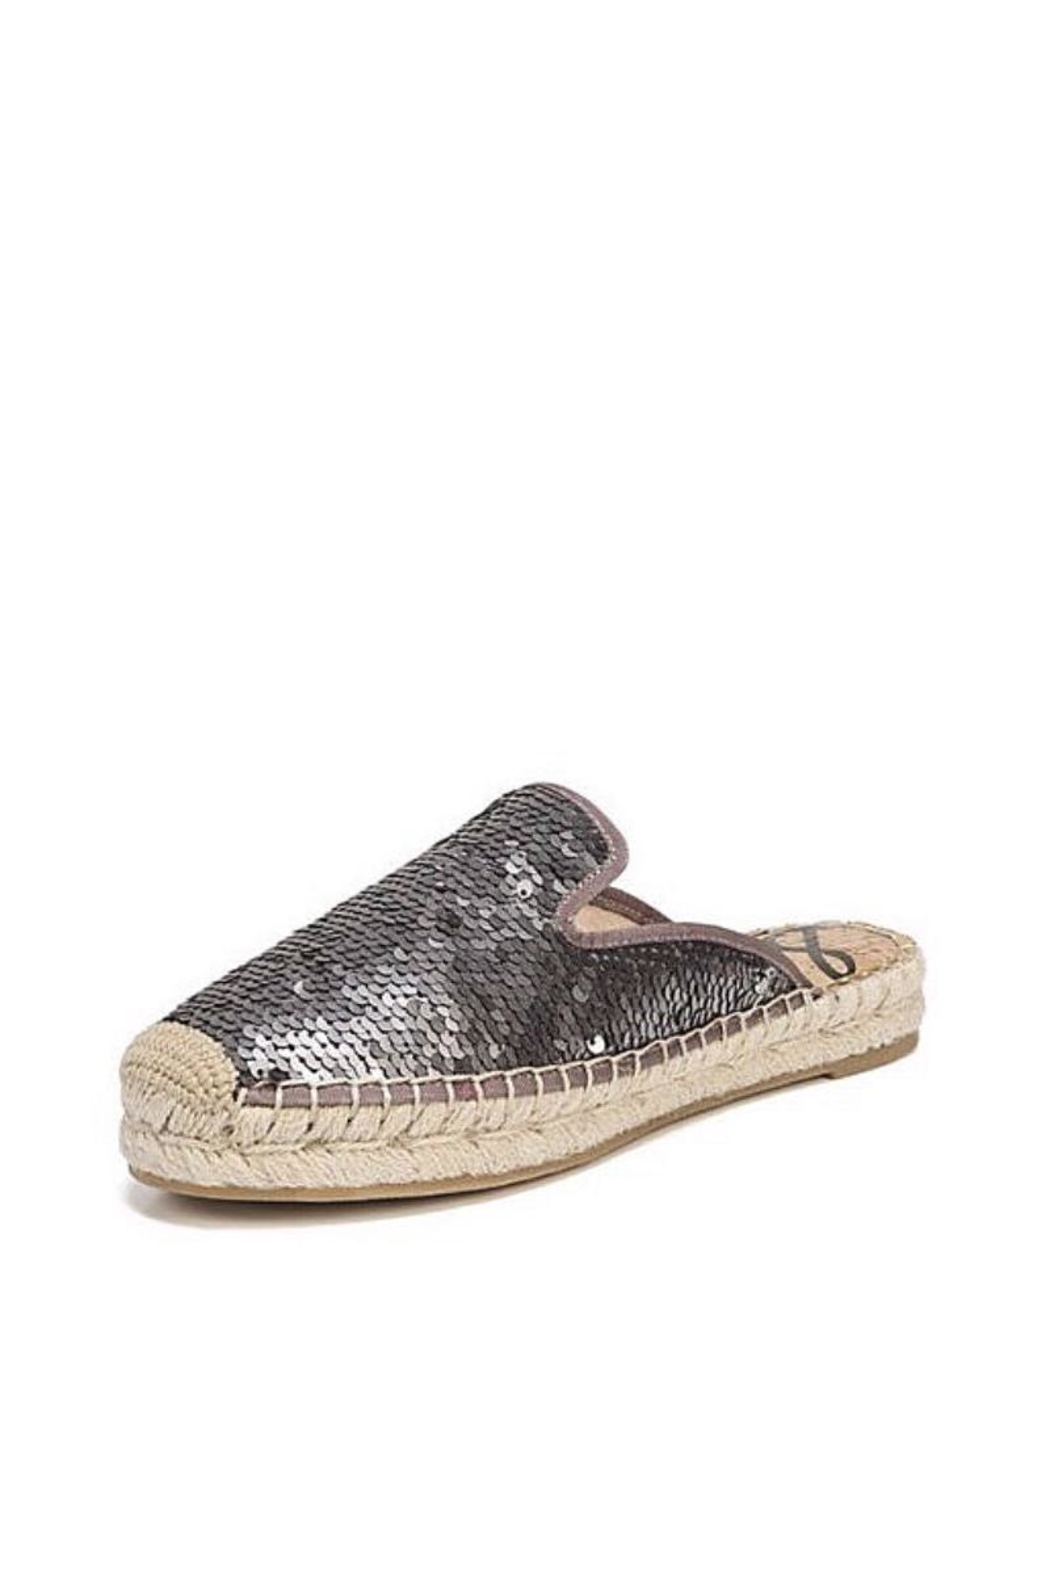 Sam Edelman Kerry Sequin Espadrille - Front Cropped Image